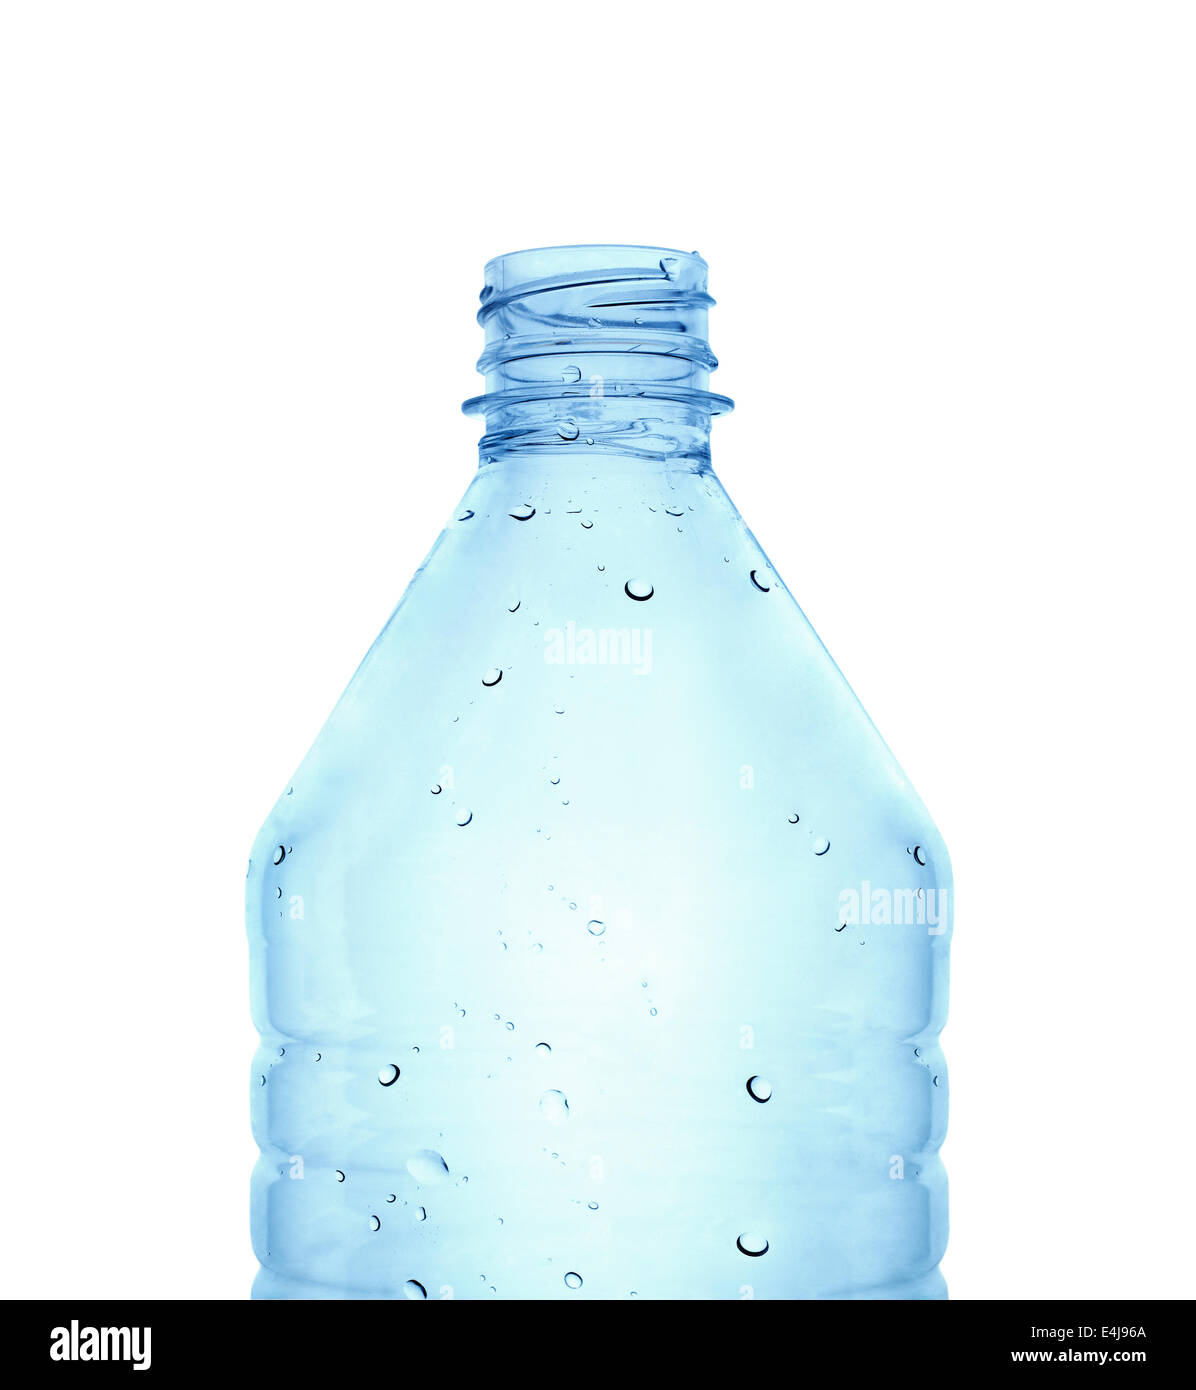 Water bottle against white background - Stock Image